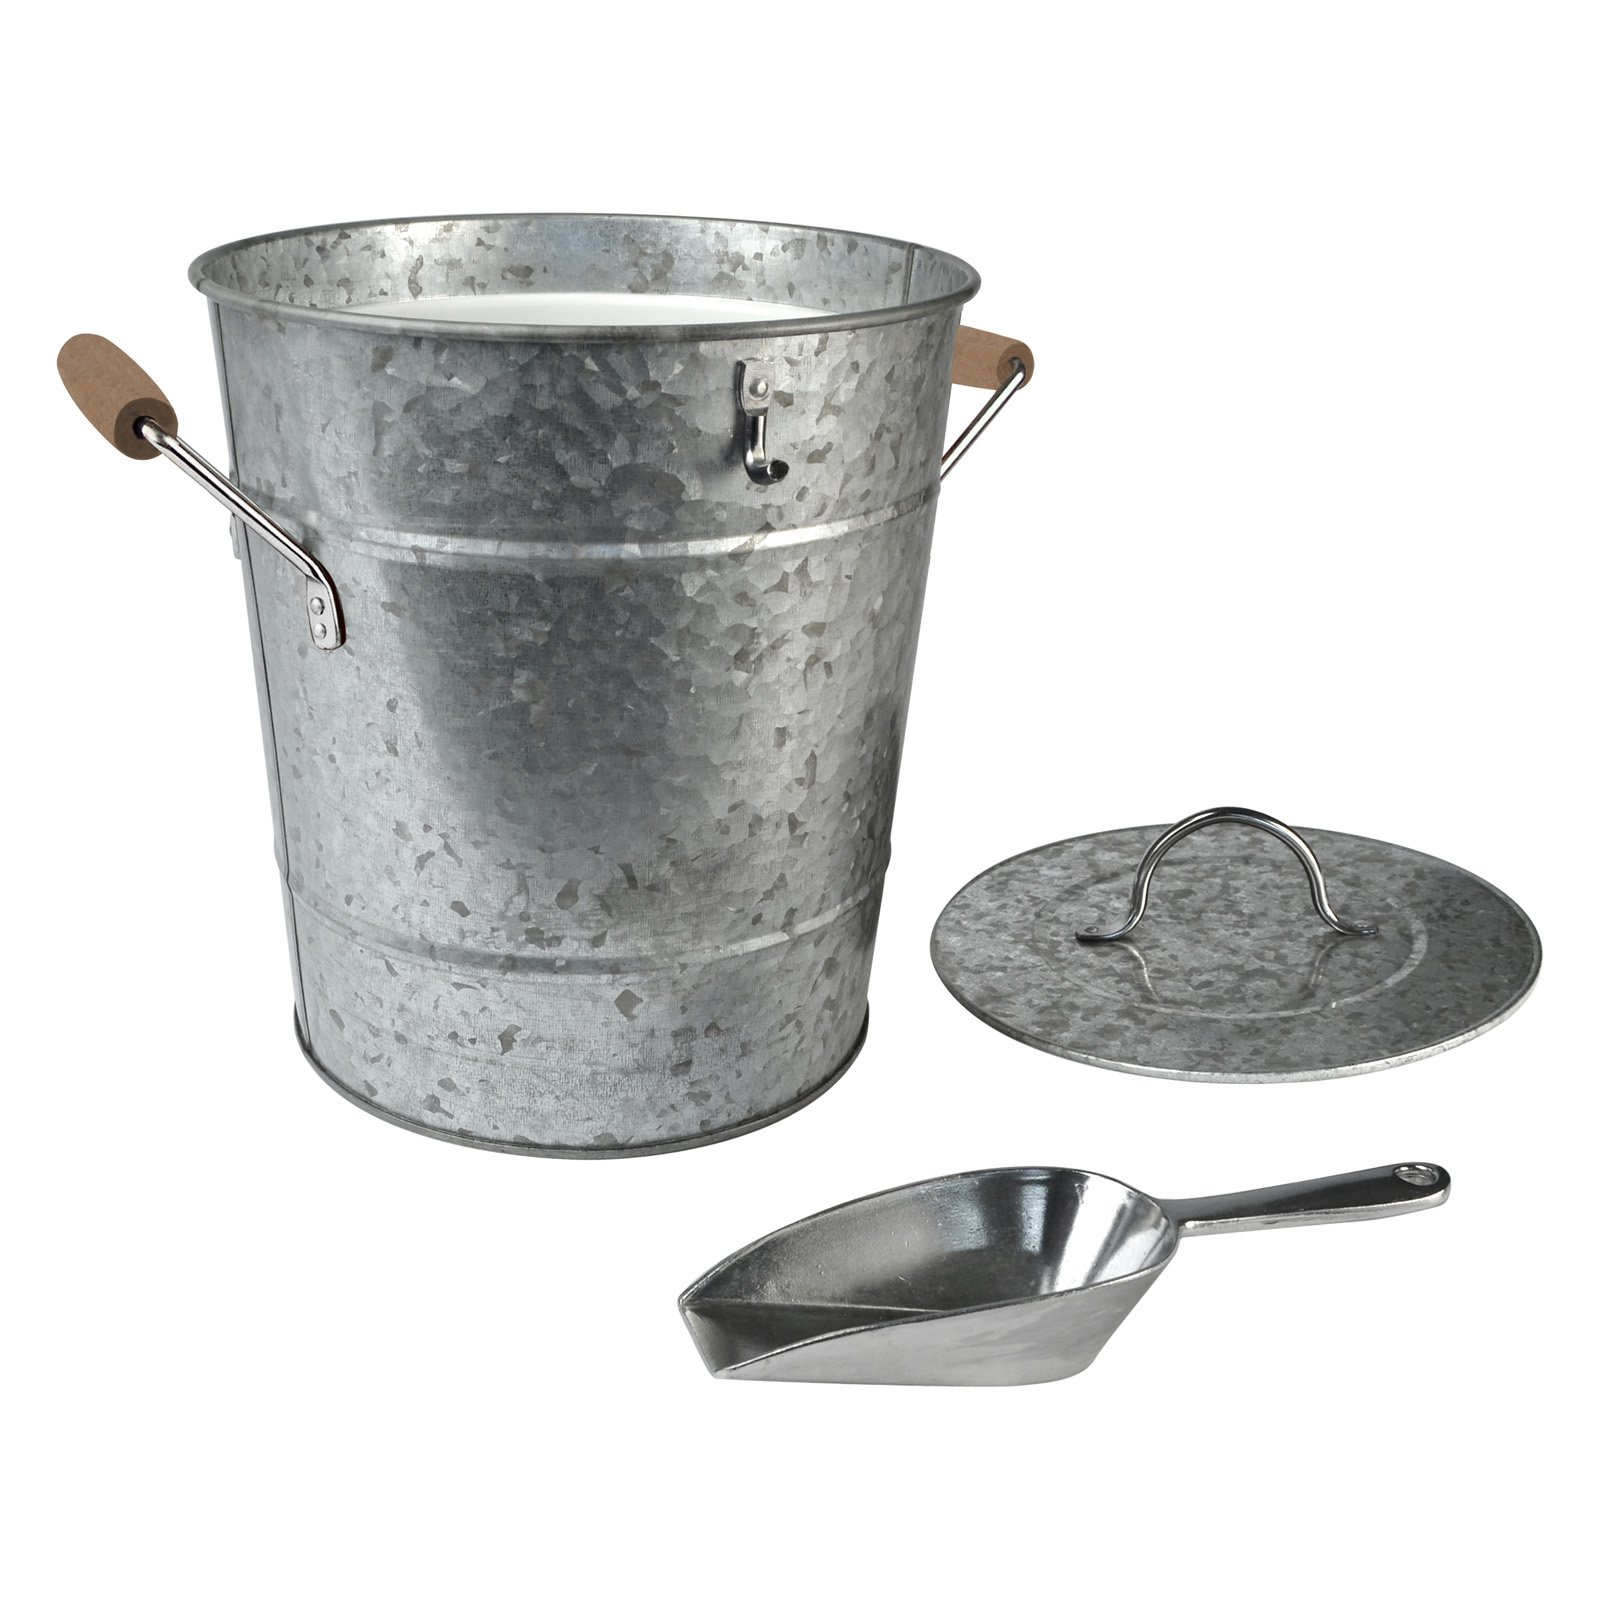 Artland Inc. Oasis Galvanized Ice Bucket with Scoop by Artland